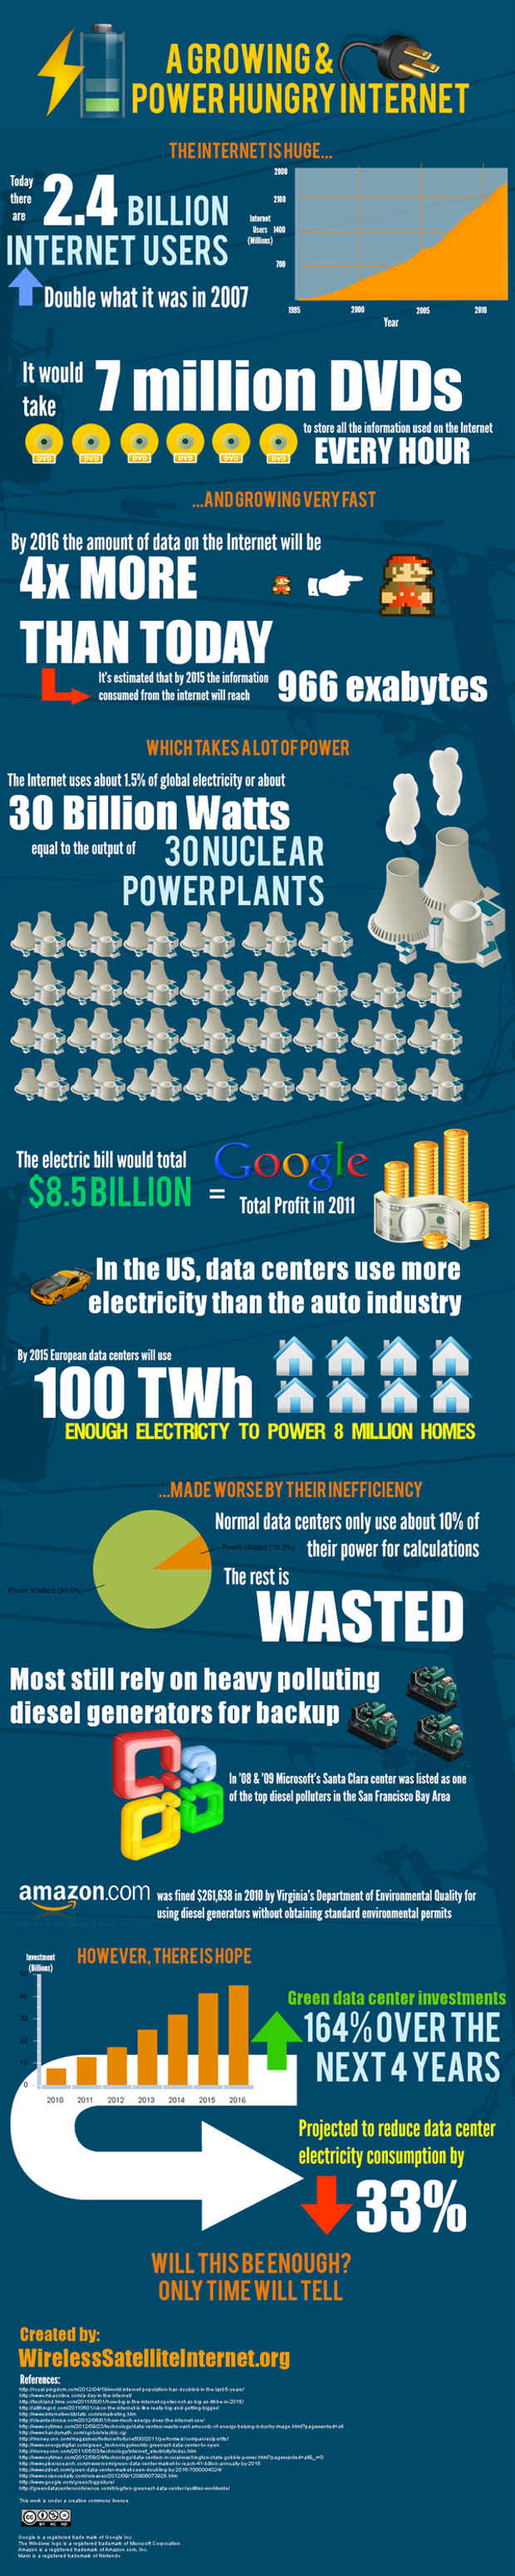 The Cost of Powering the Internet